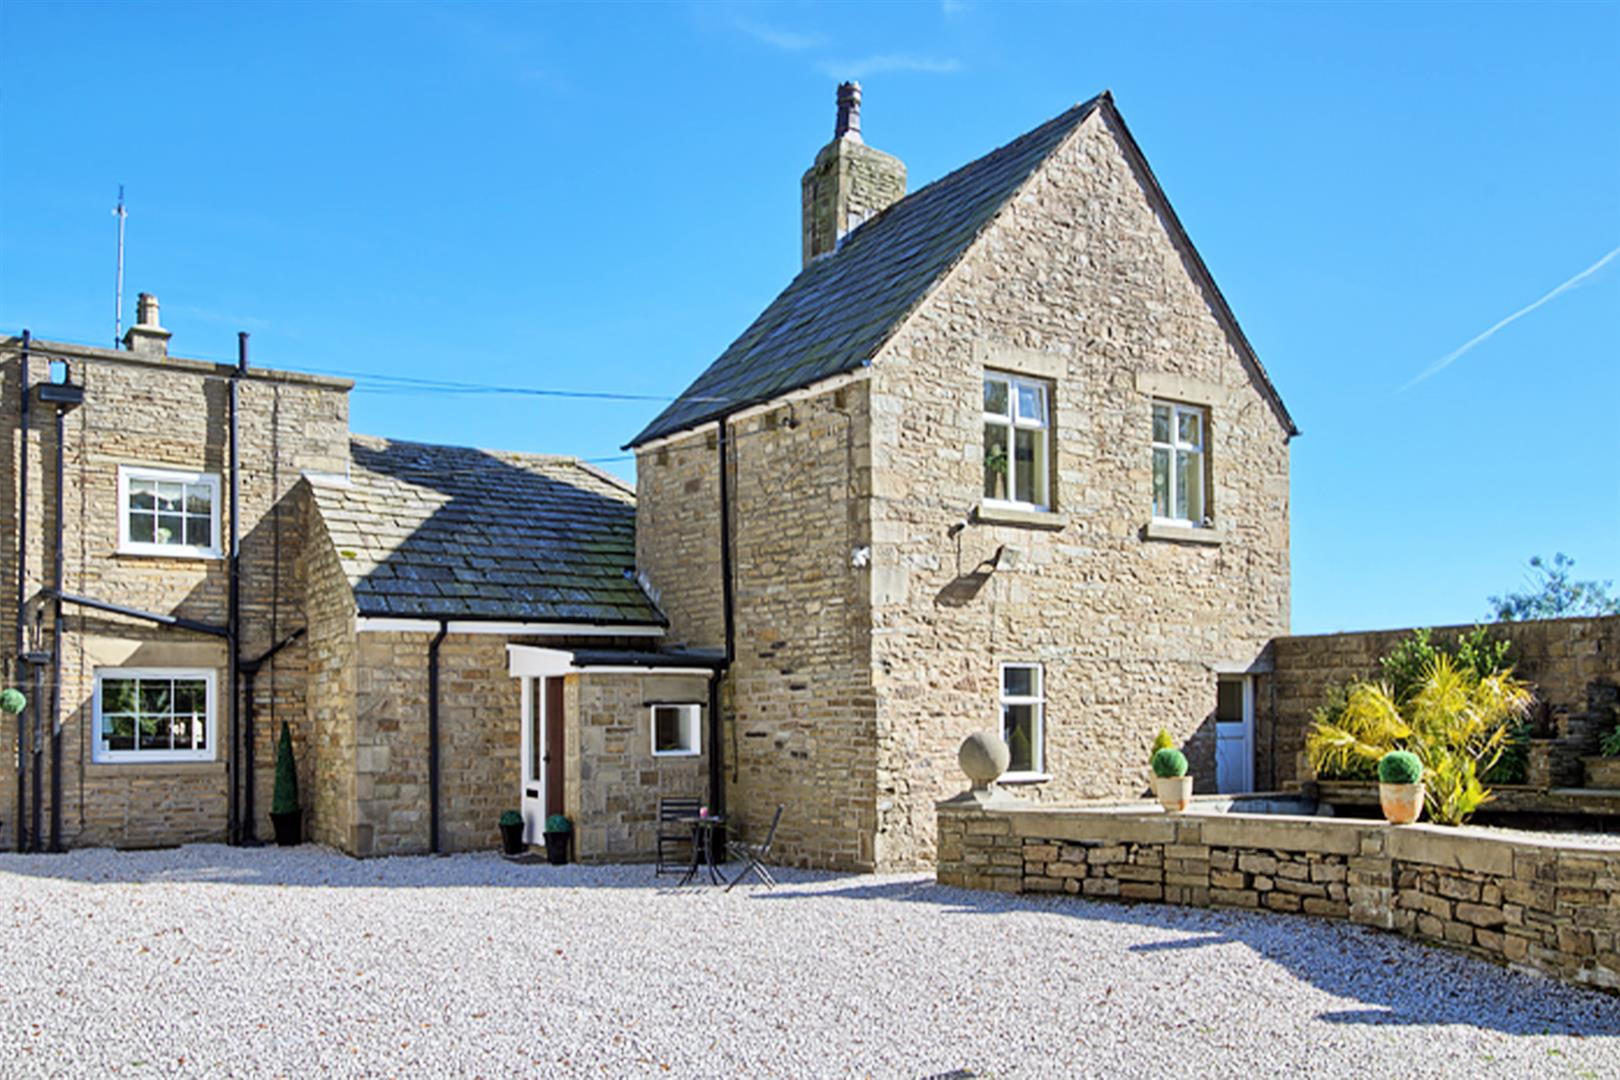 4 bedroom house For Sale in Bolton - cottage.png.